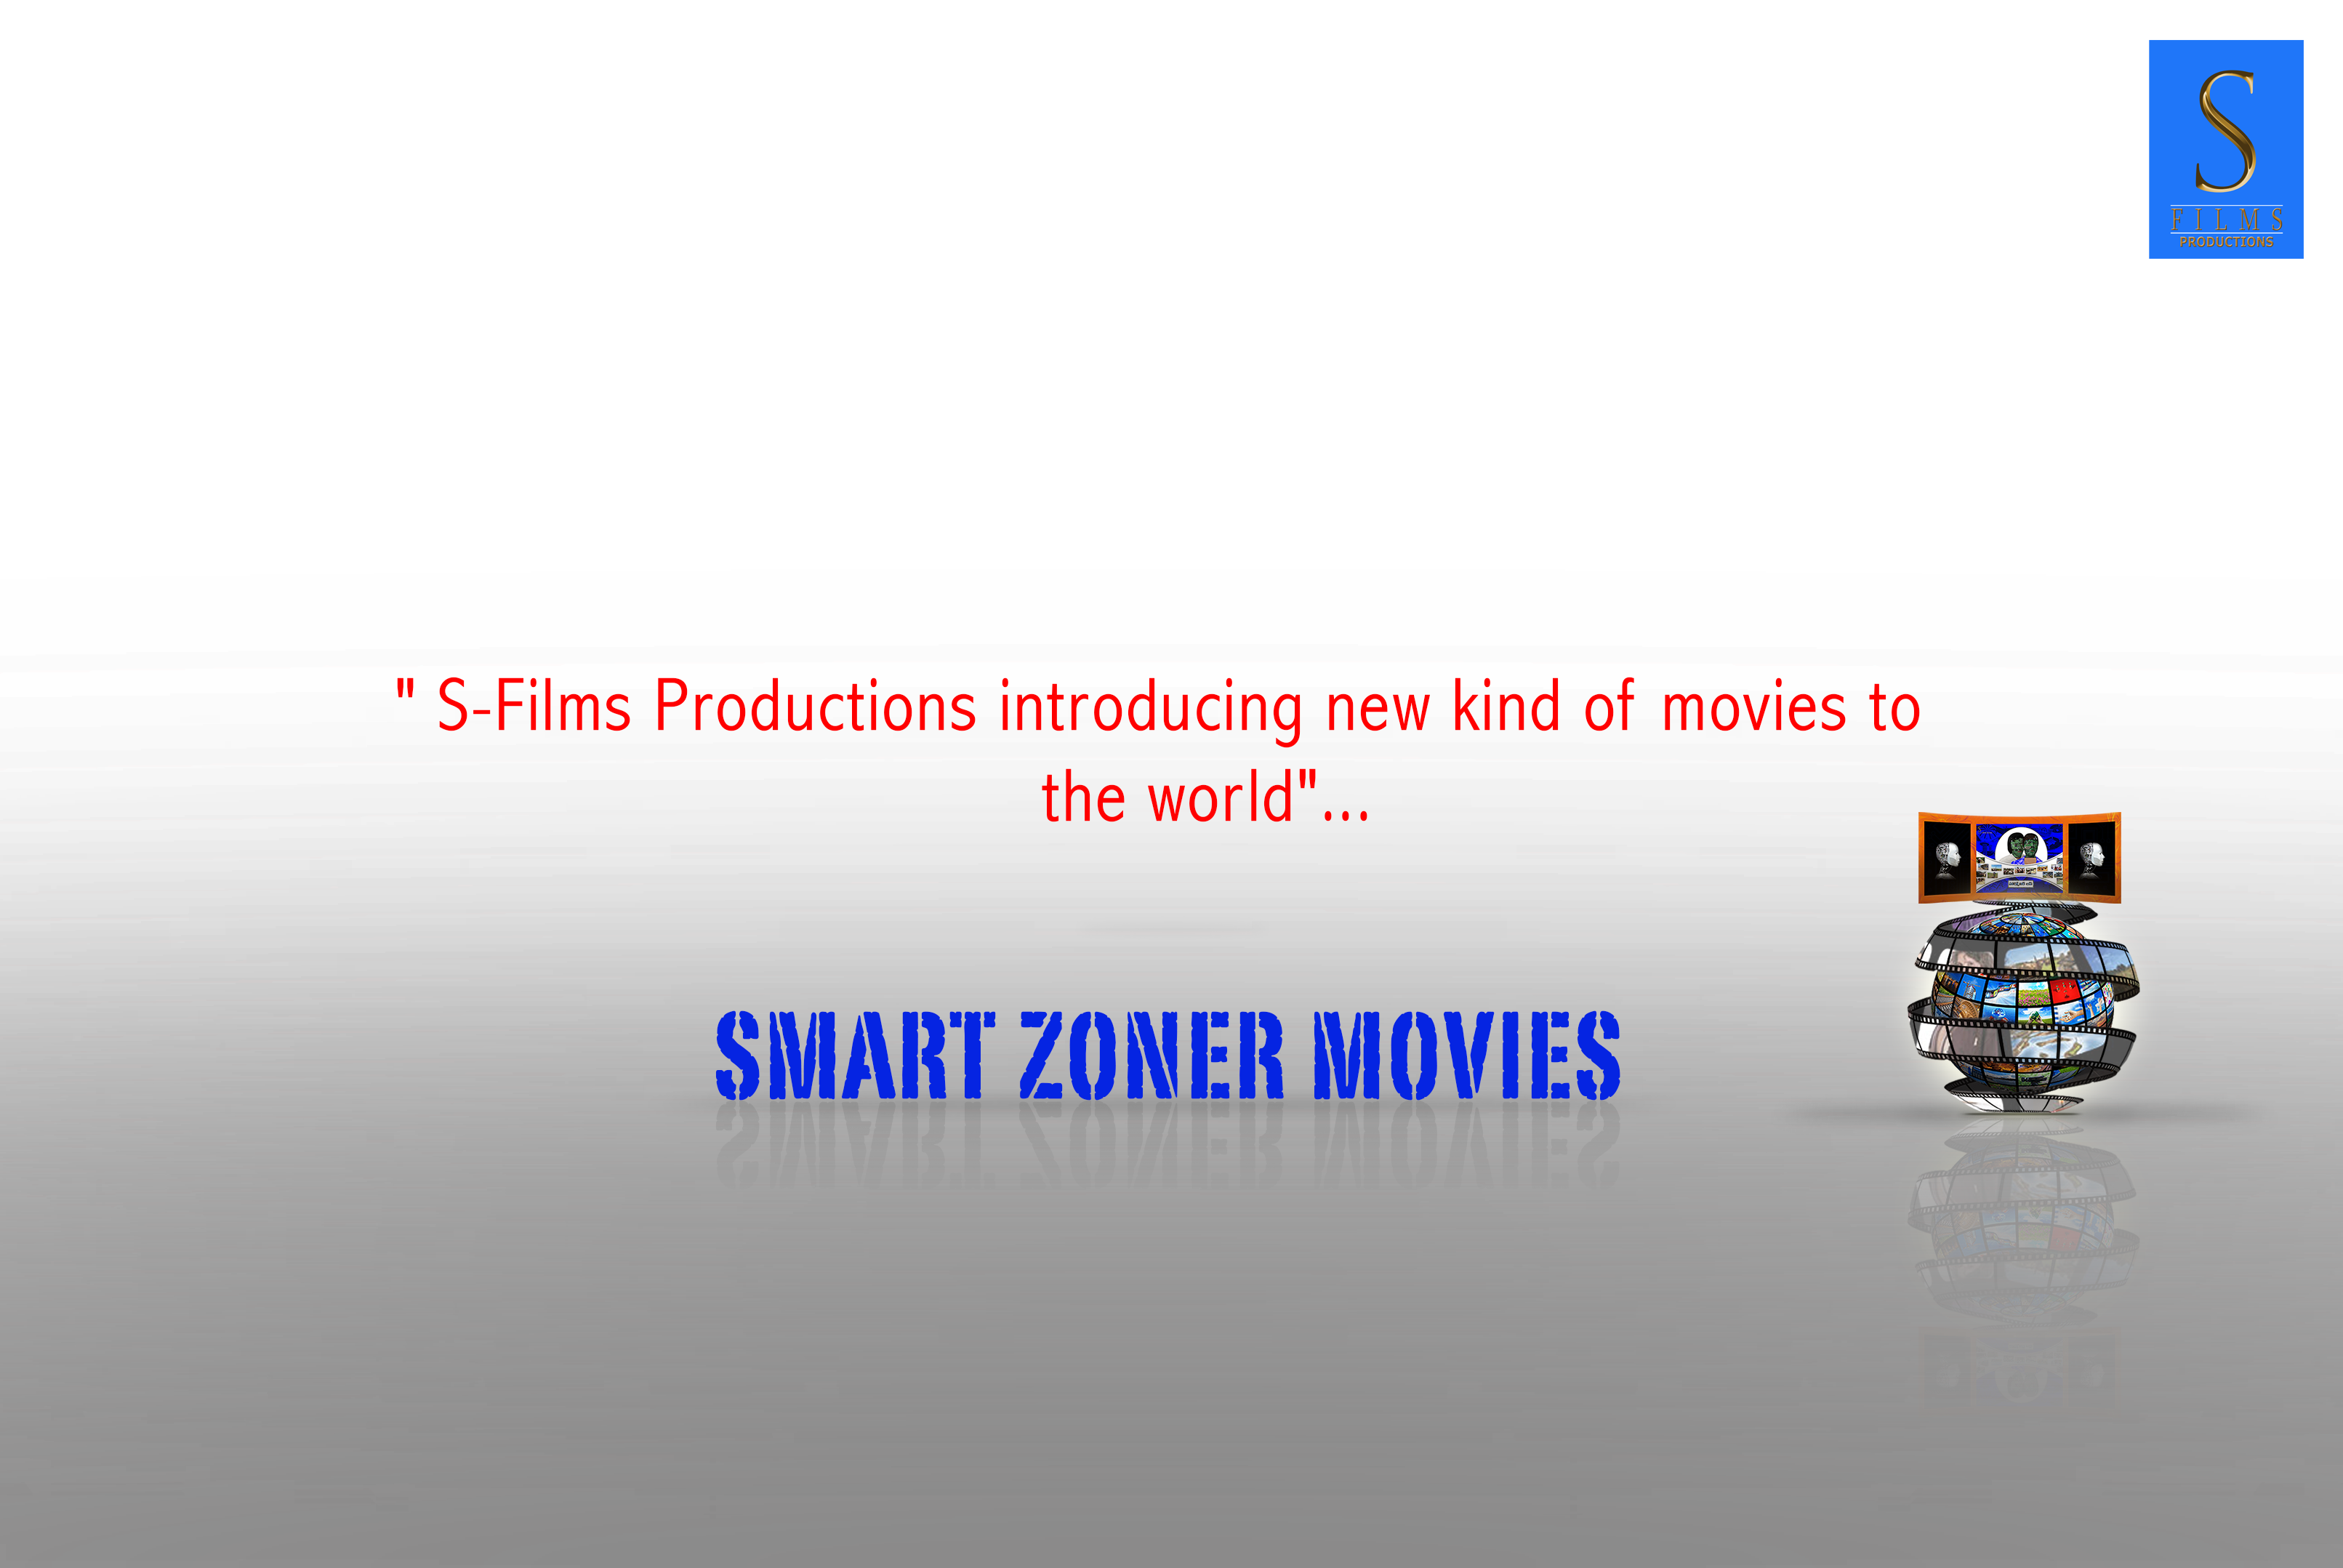 Regular Movie Involves Lot Of Time Man Budget Introducing New Trend In Making Smart Zoner Movies Make While Having A Cup Tea